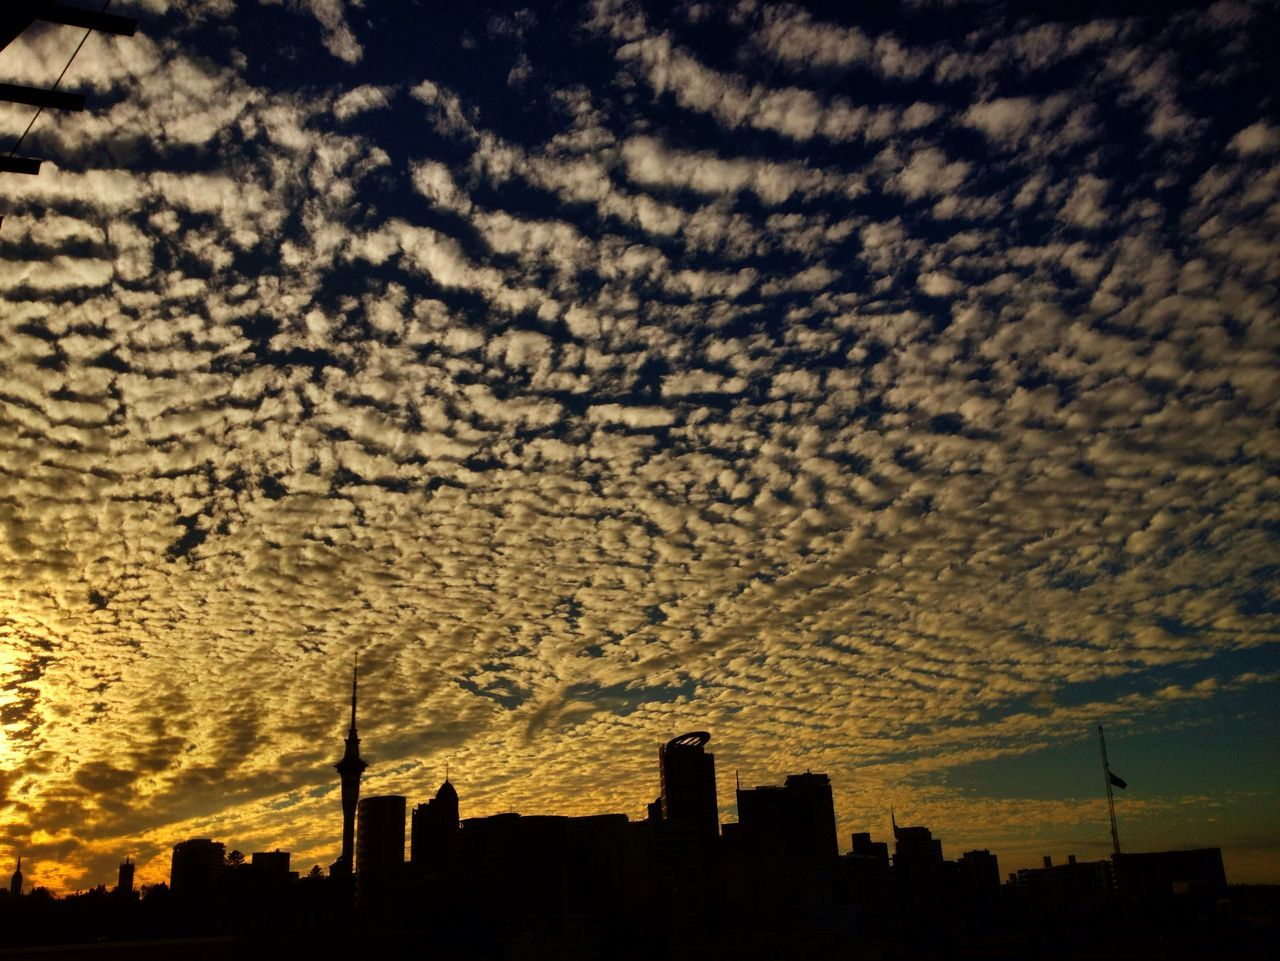 Low angle view of silhouette cityscape against cloudy sky during sunset